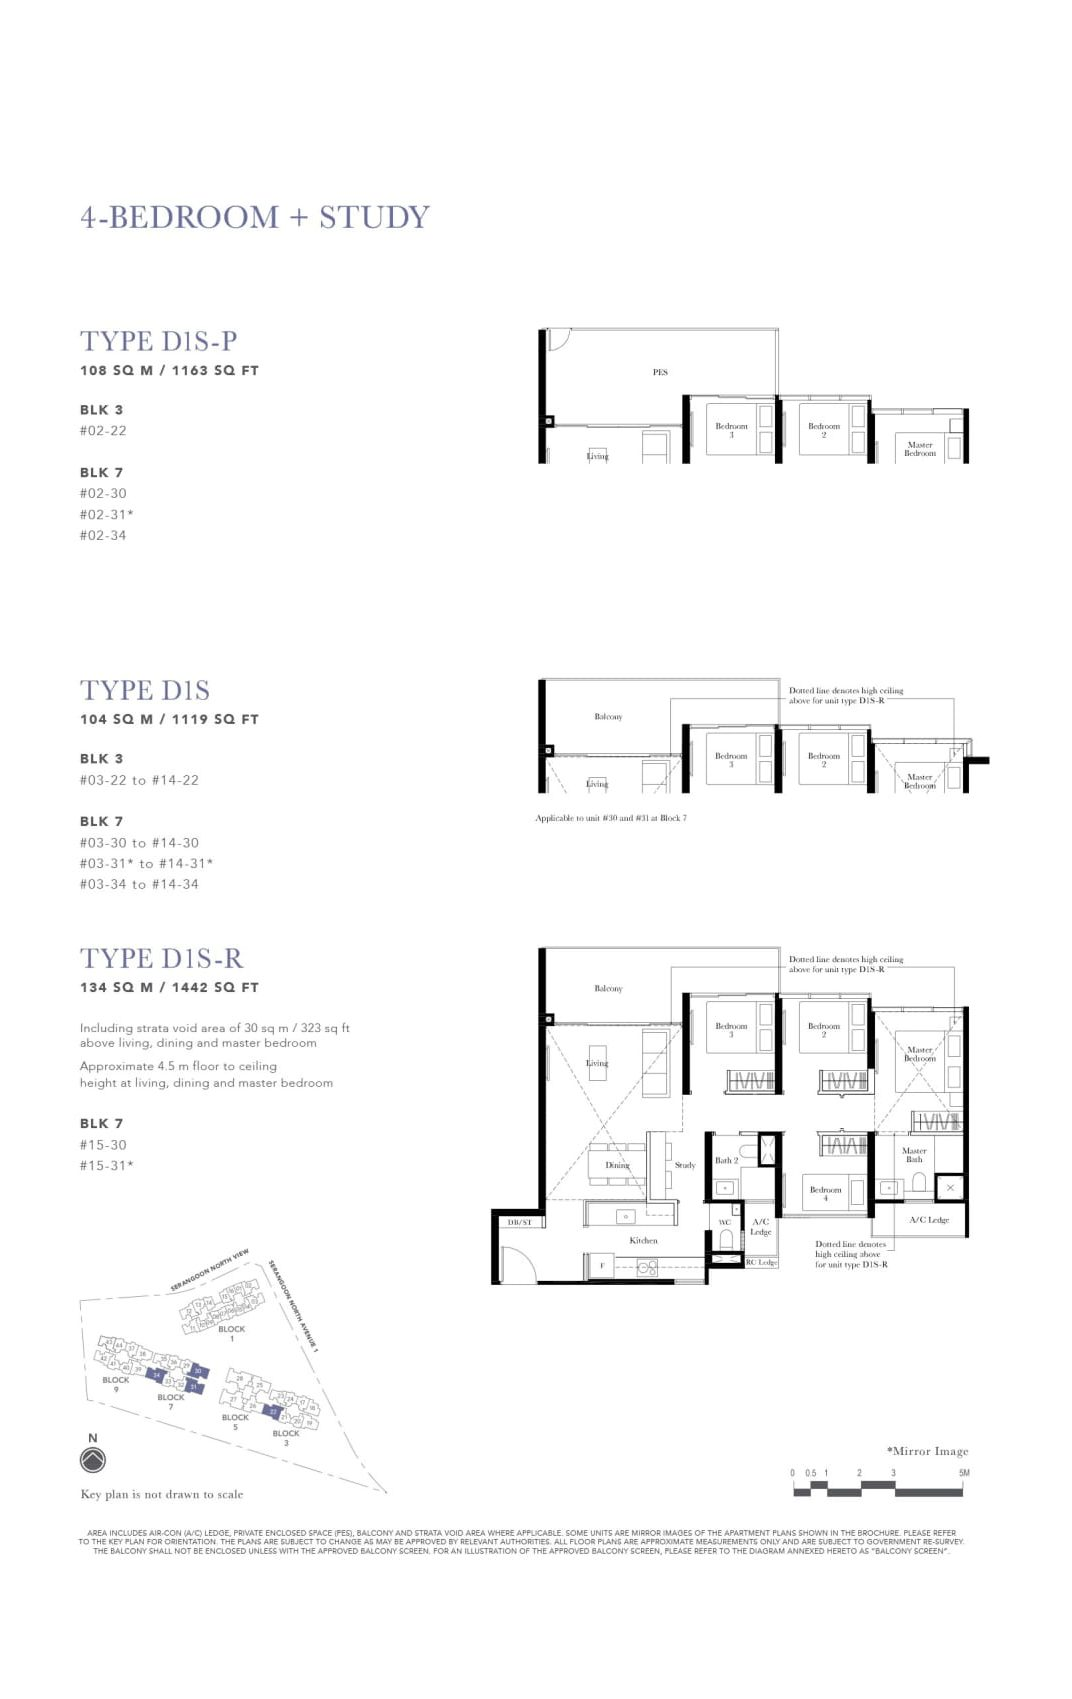 The Garden Residences' four-bedroom + study types